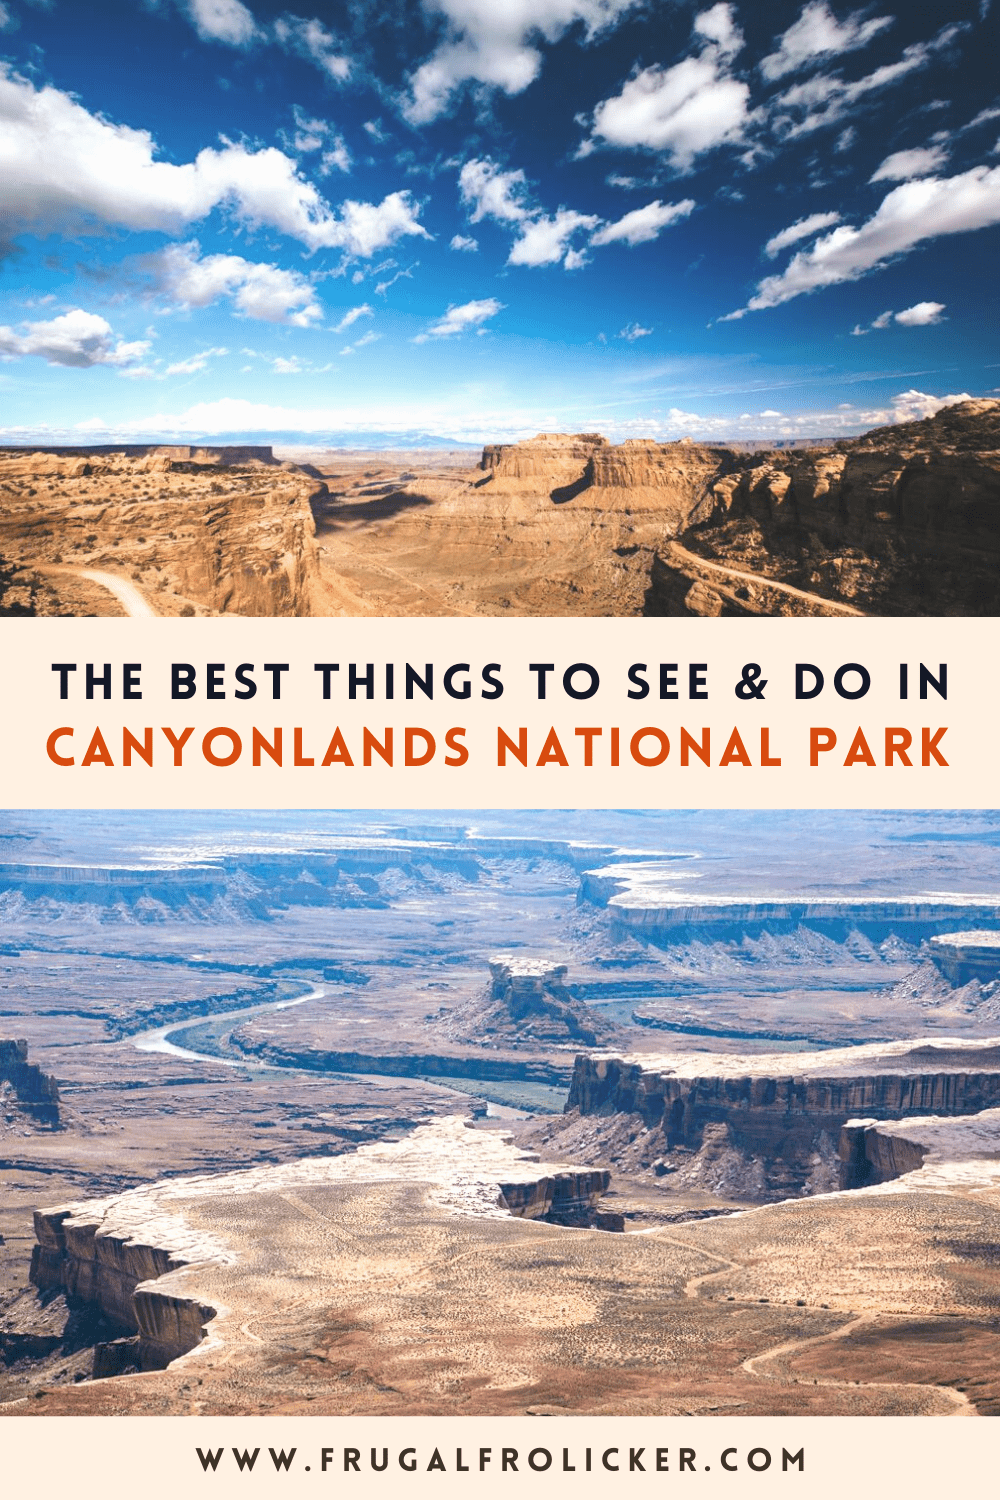 What to see and do at Canyonlands National Park